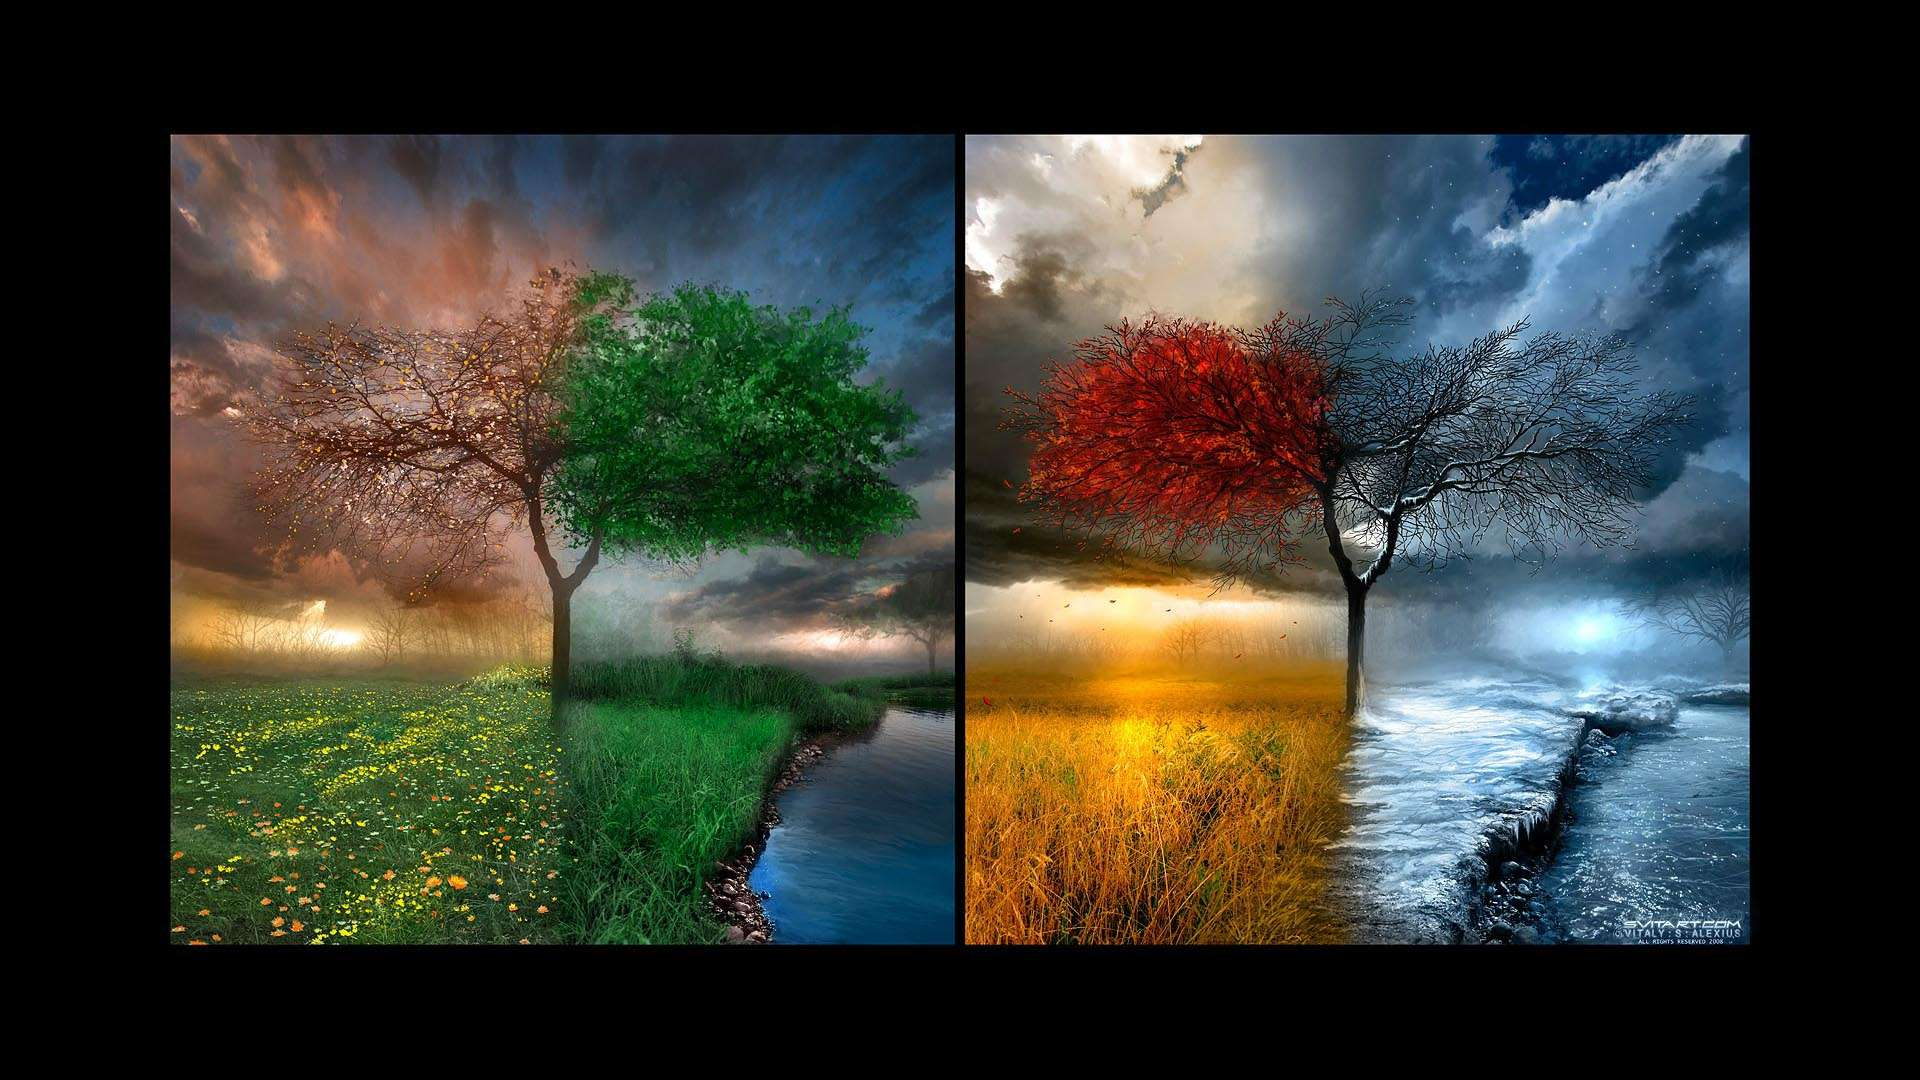 Four Seasons HD Wallpaper FullHDWpp   Full HD Wallpapers 1920x1080 1920x1080